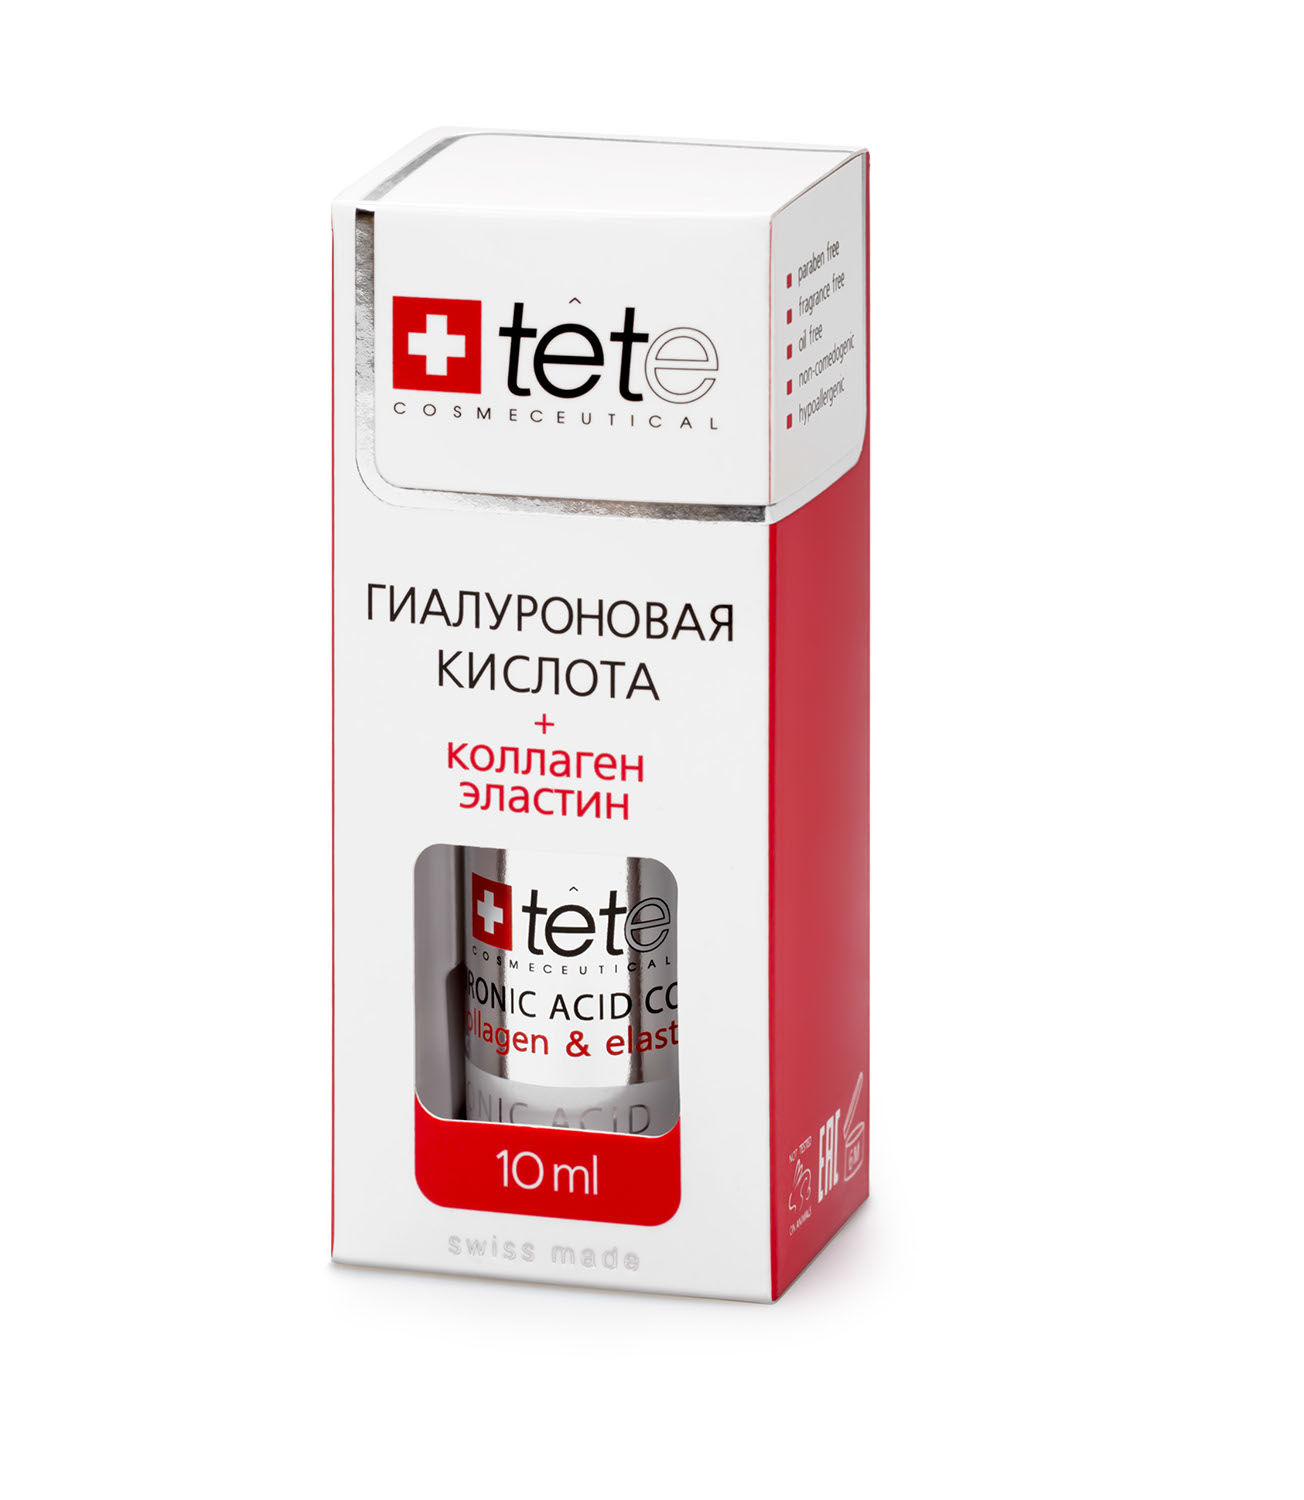 Мини гиалуроновая кислота 100% с коллагеном и эластином TETe Cosmeceutical MINI Hyaluronic Acid Collagen Elastin